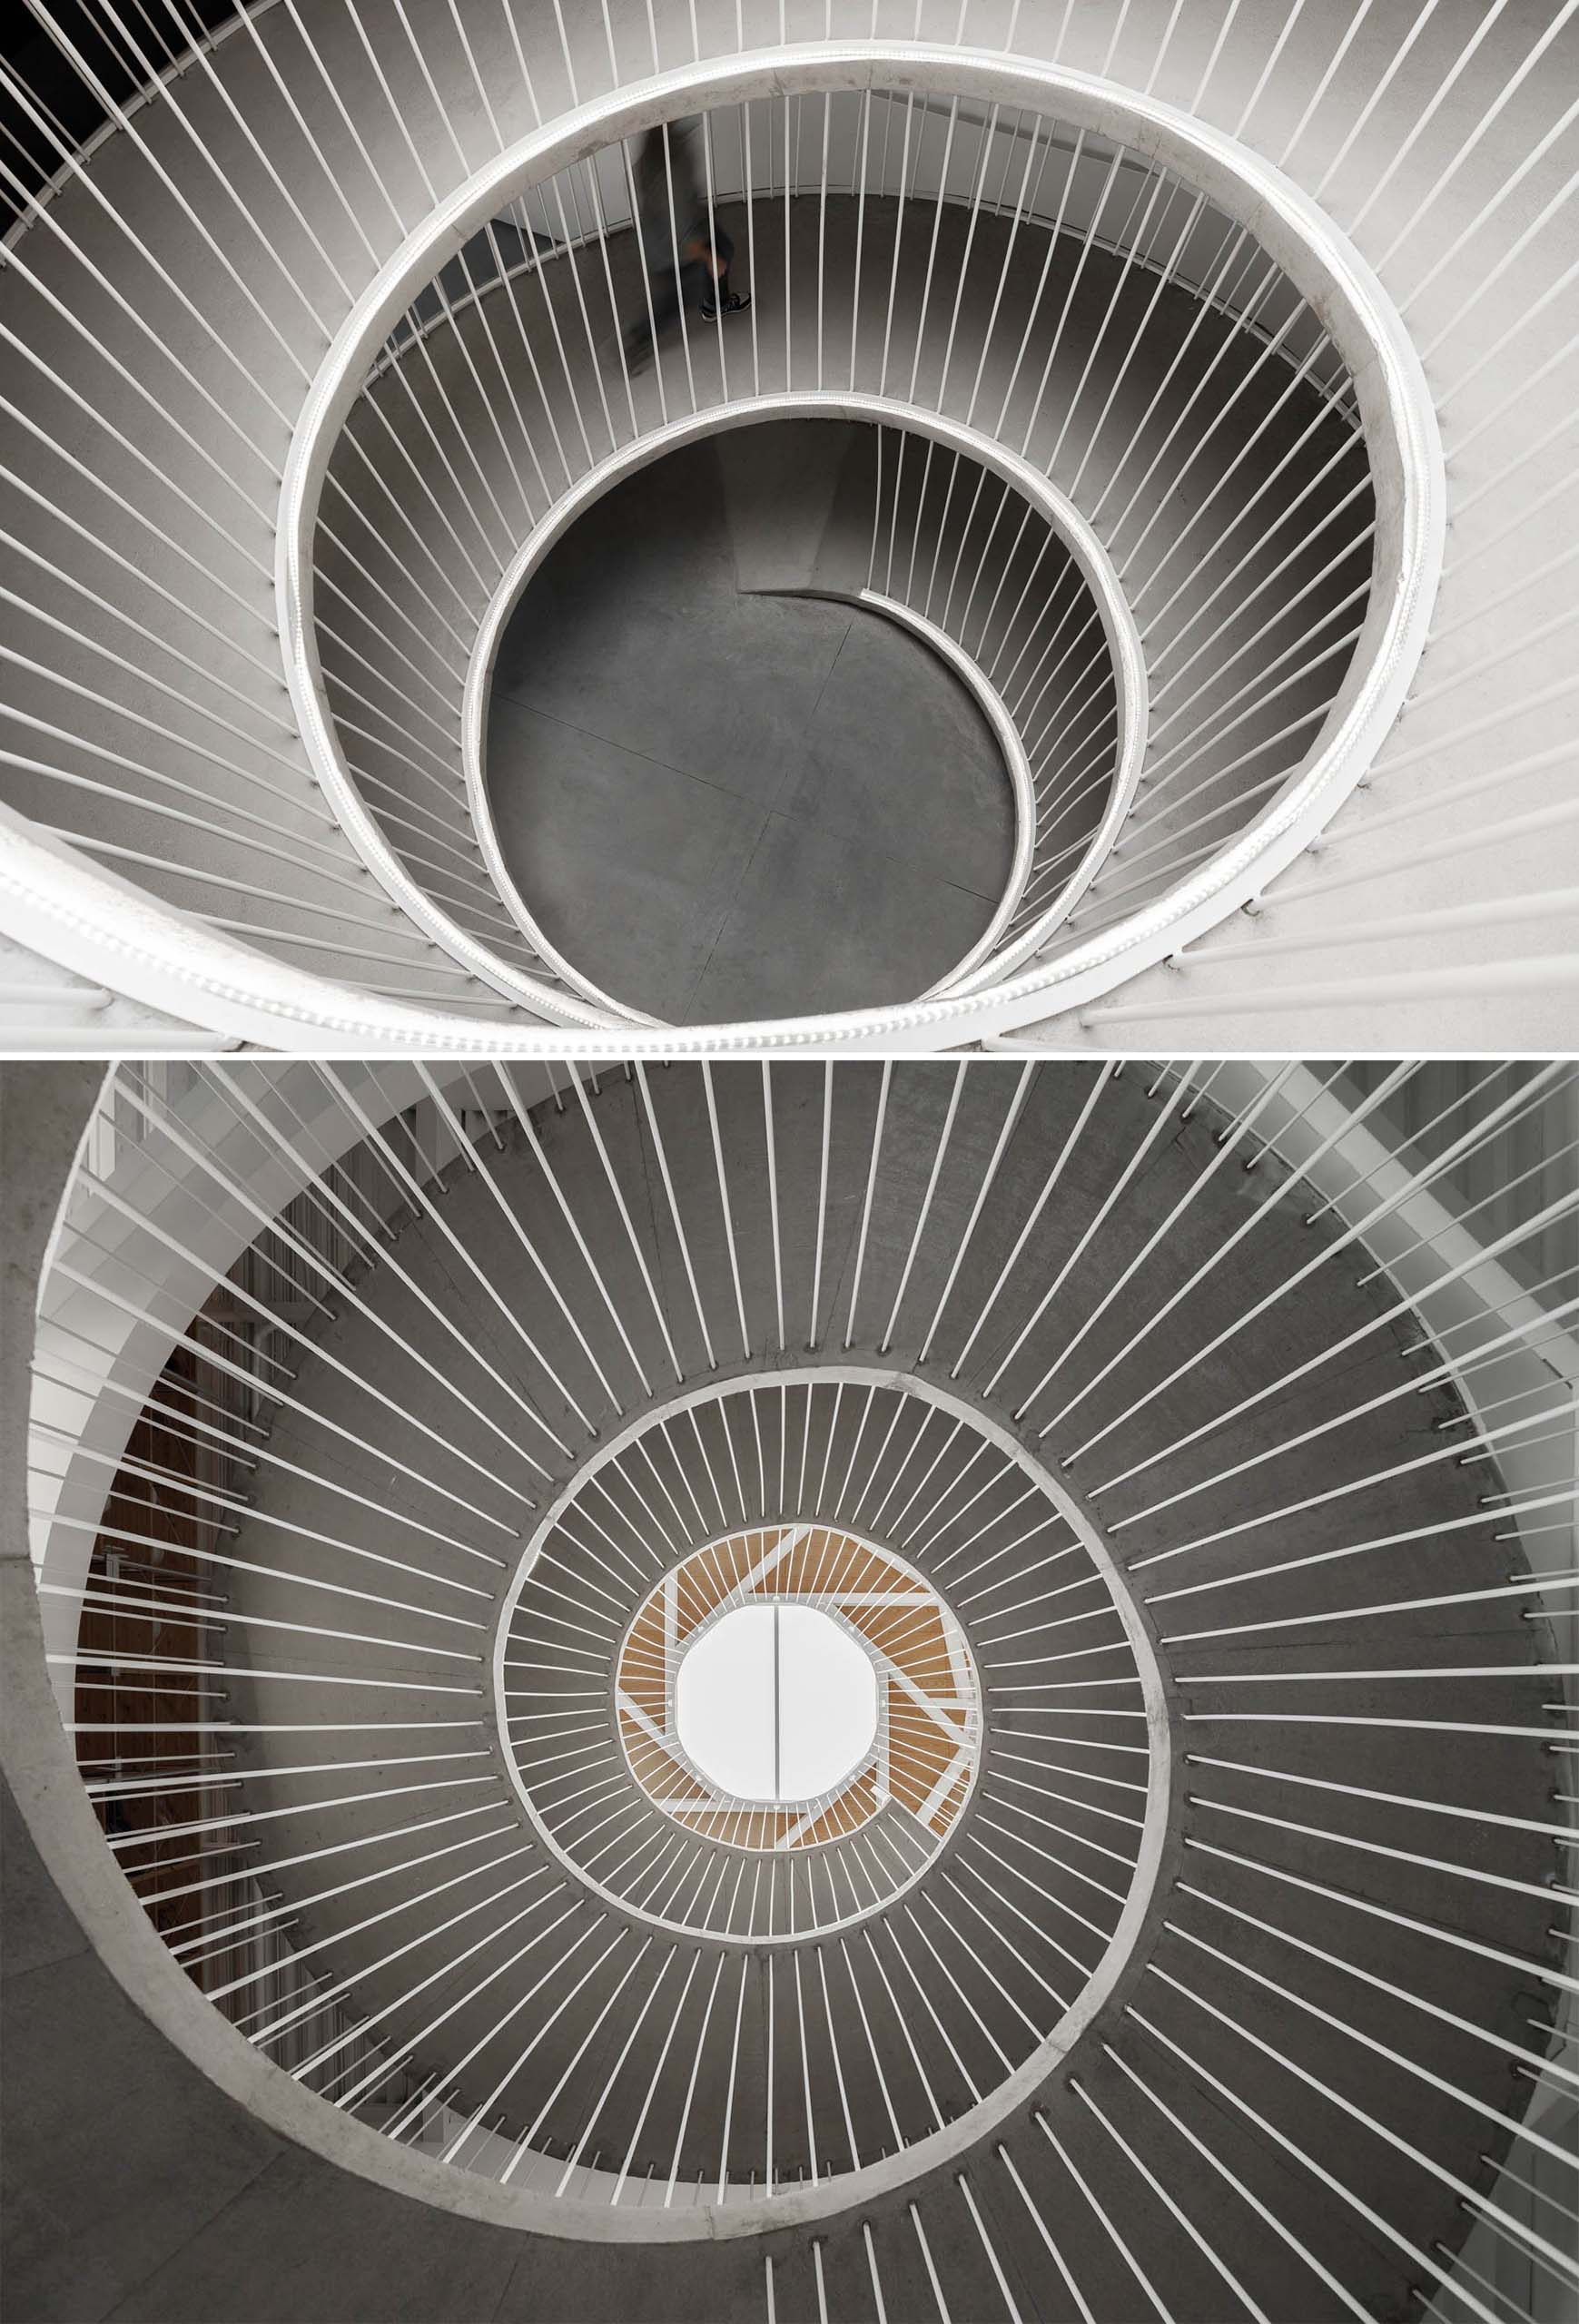 A spiraling ramp replaces the need for stairs in this modern office.